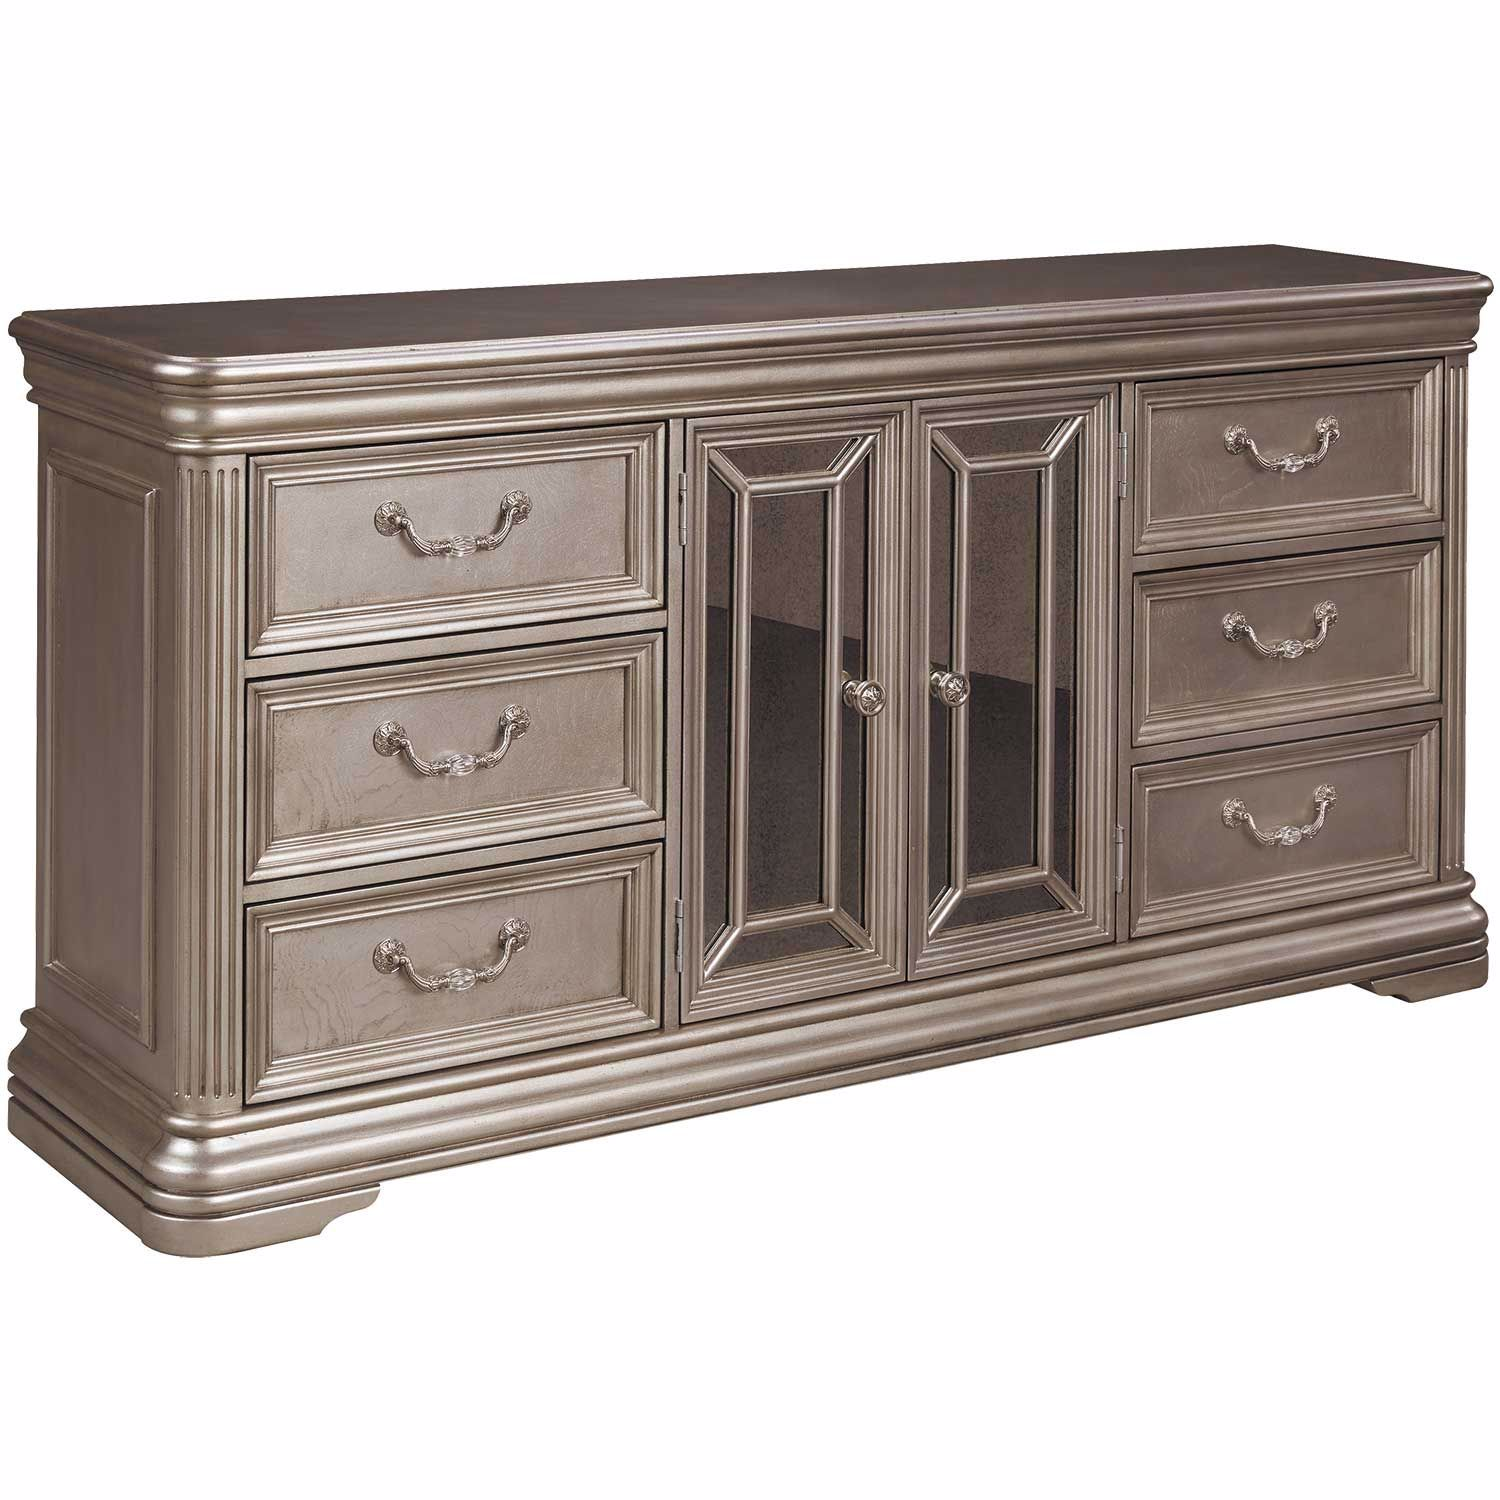 Picture of Birlanny Dresser